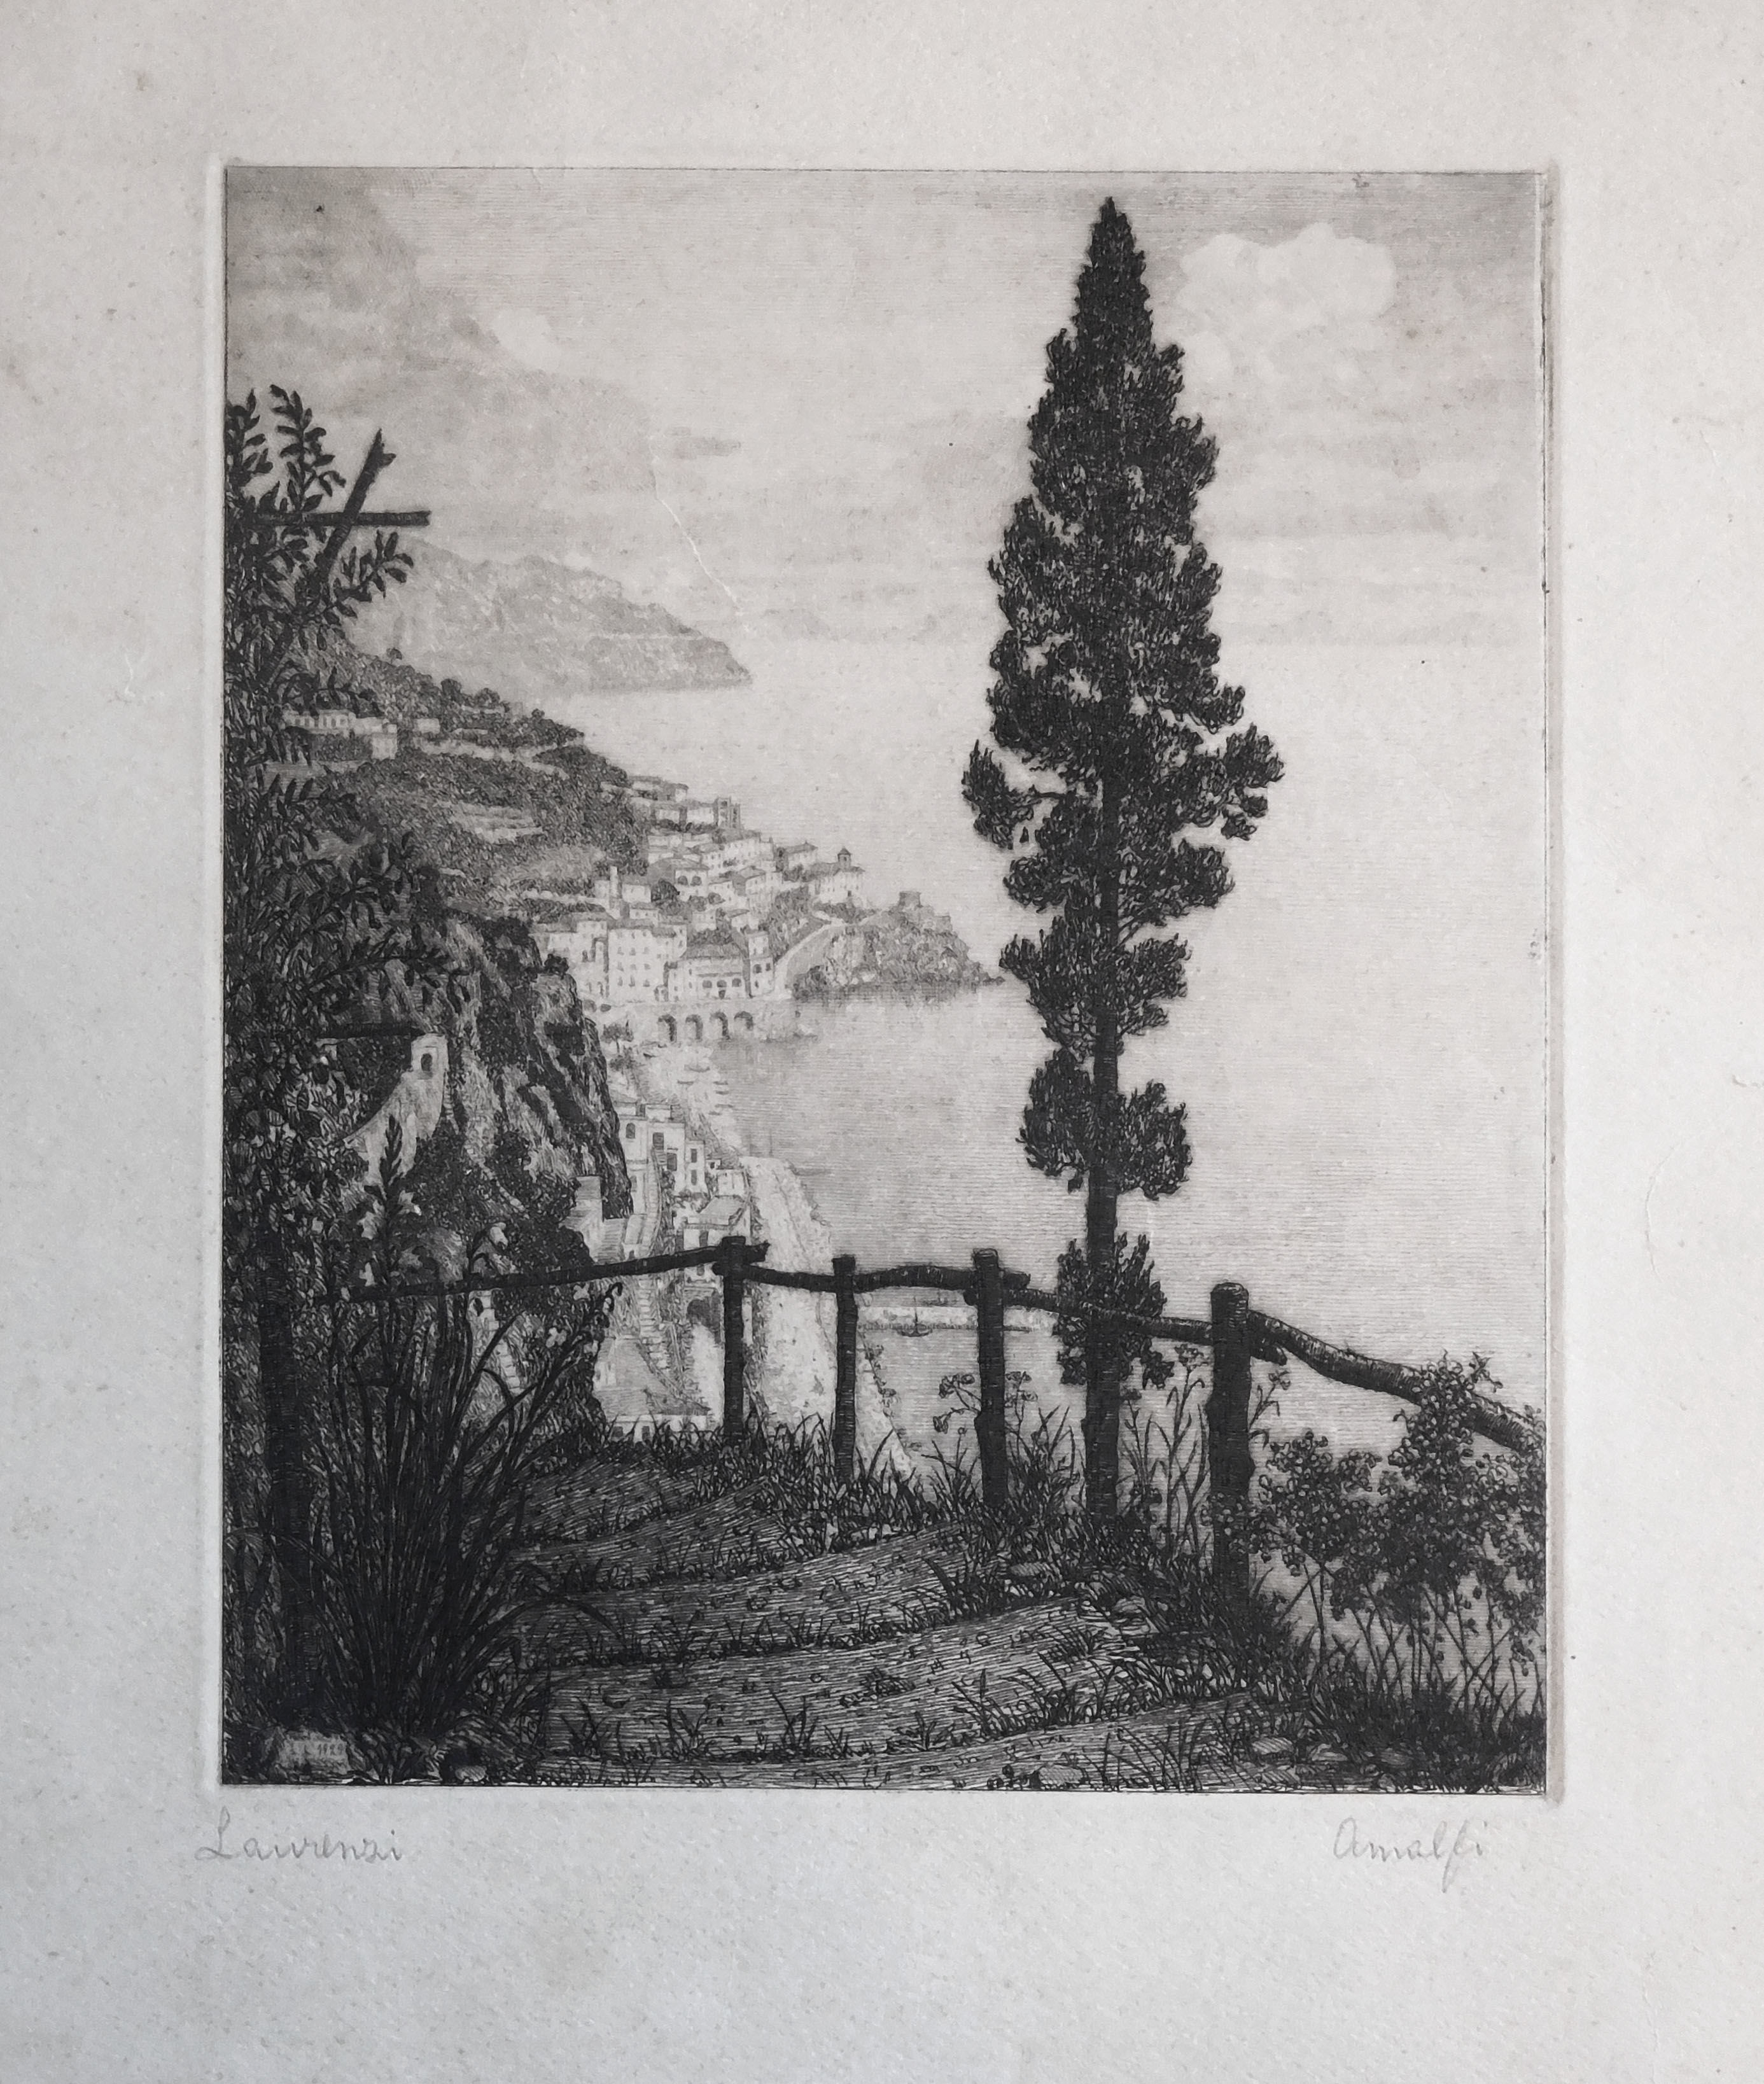 Original etching titled Italianate signed by artist